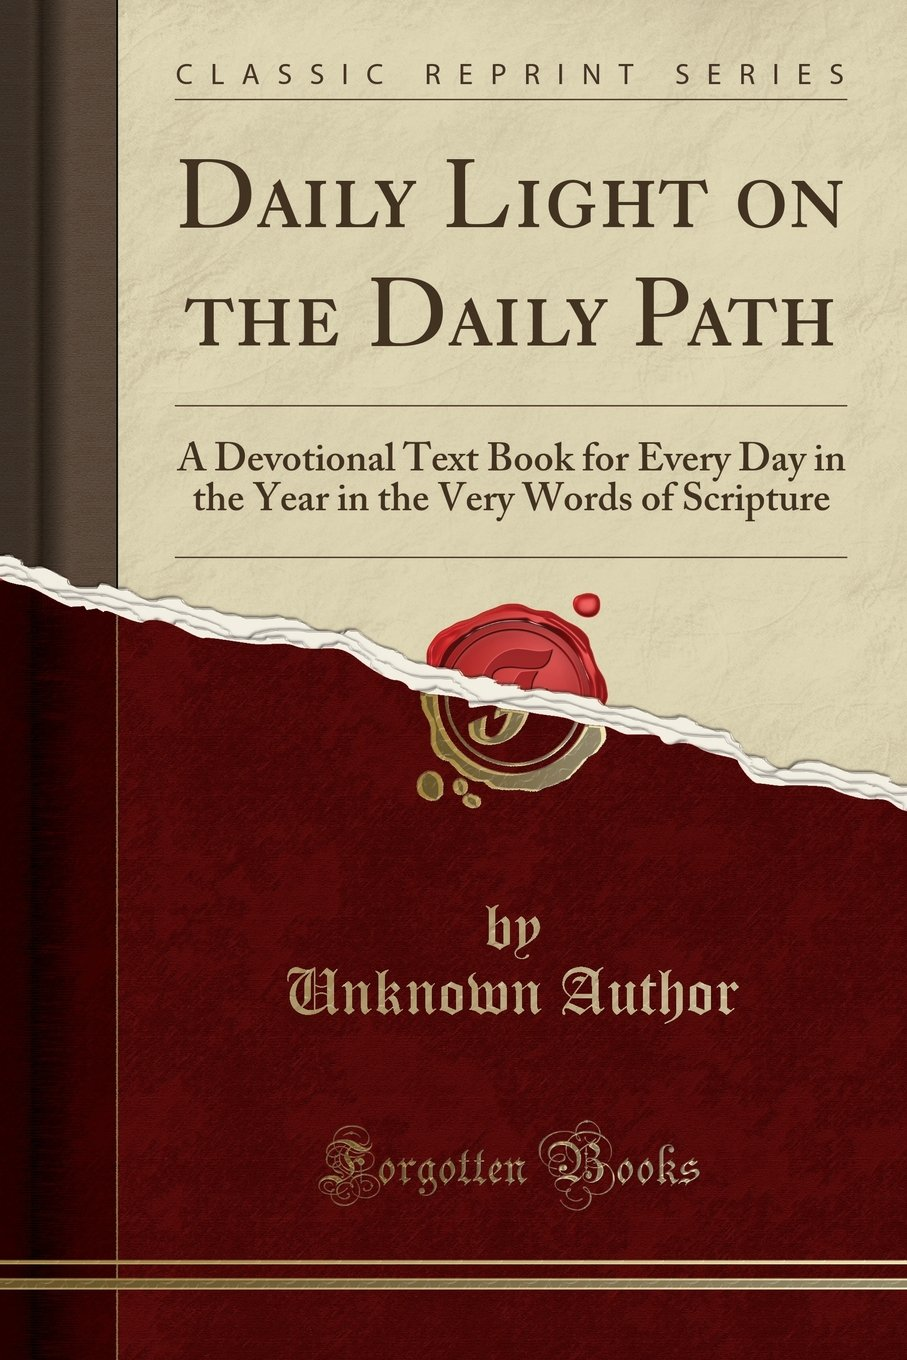 Download Daily Light on the Daily Path: A Devotional Text Book for Every Day in the Year in the Very Words of Scripture (Classic Reprint) ebook